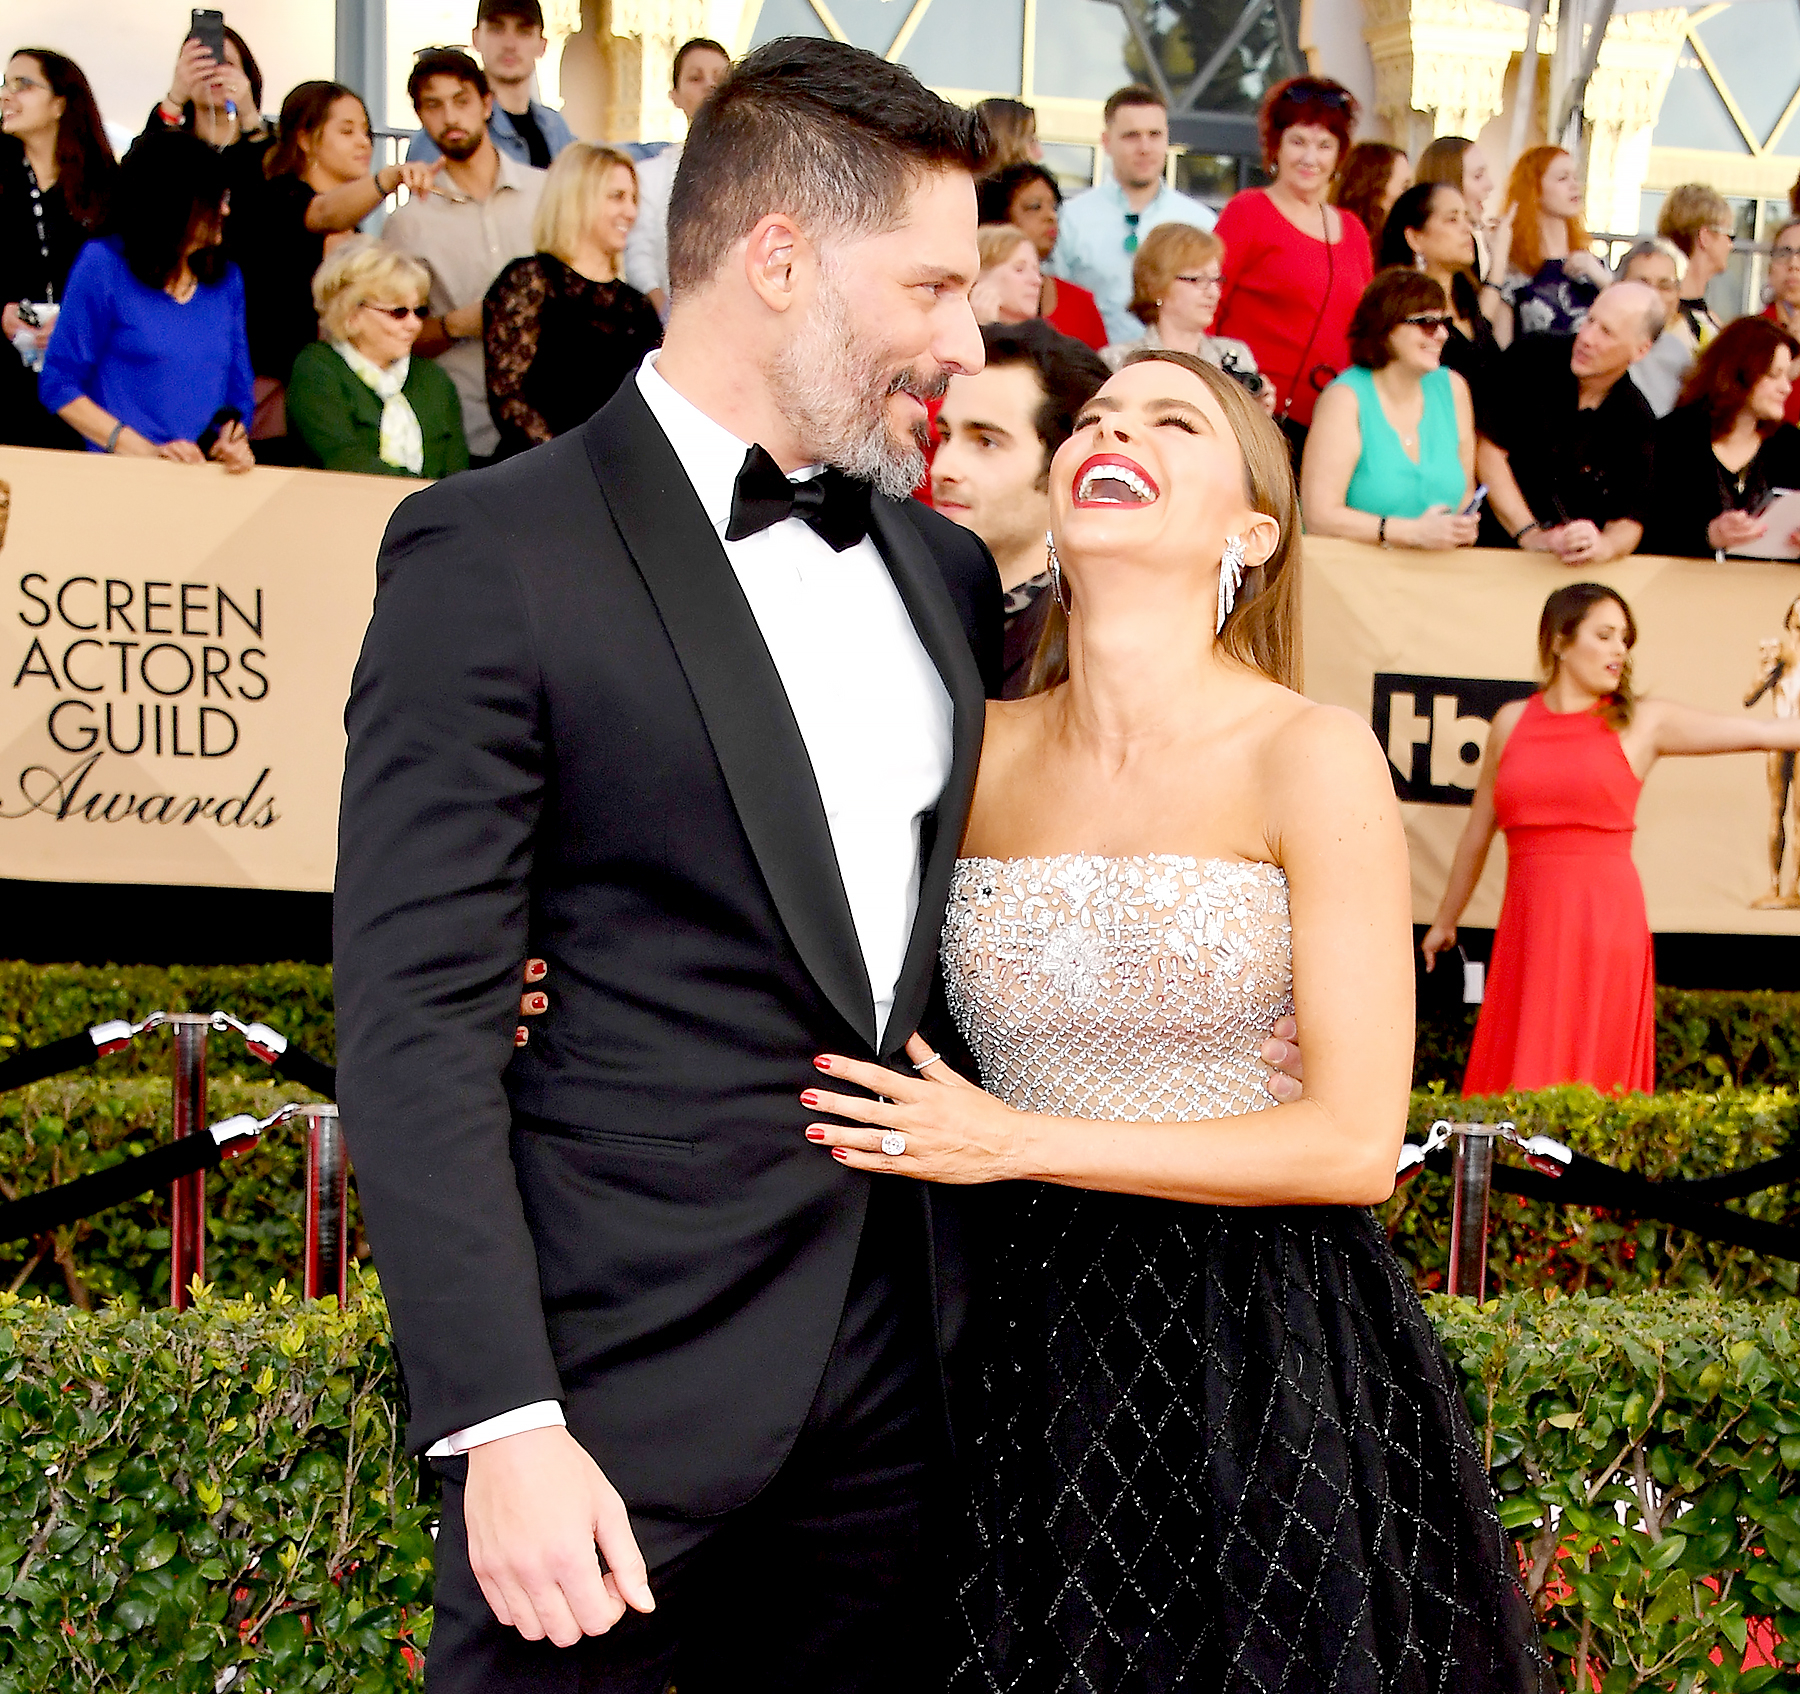 Joe Manganiello and Sofia Vergara attend the 23rd Annual Screen Actors Guild Awards.